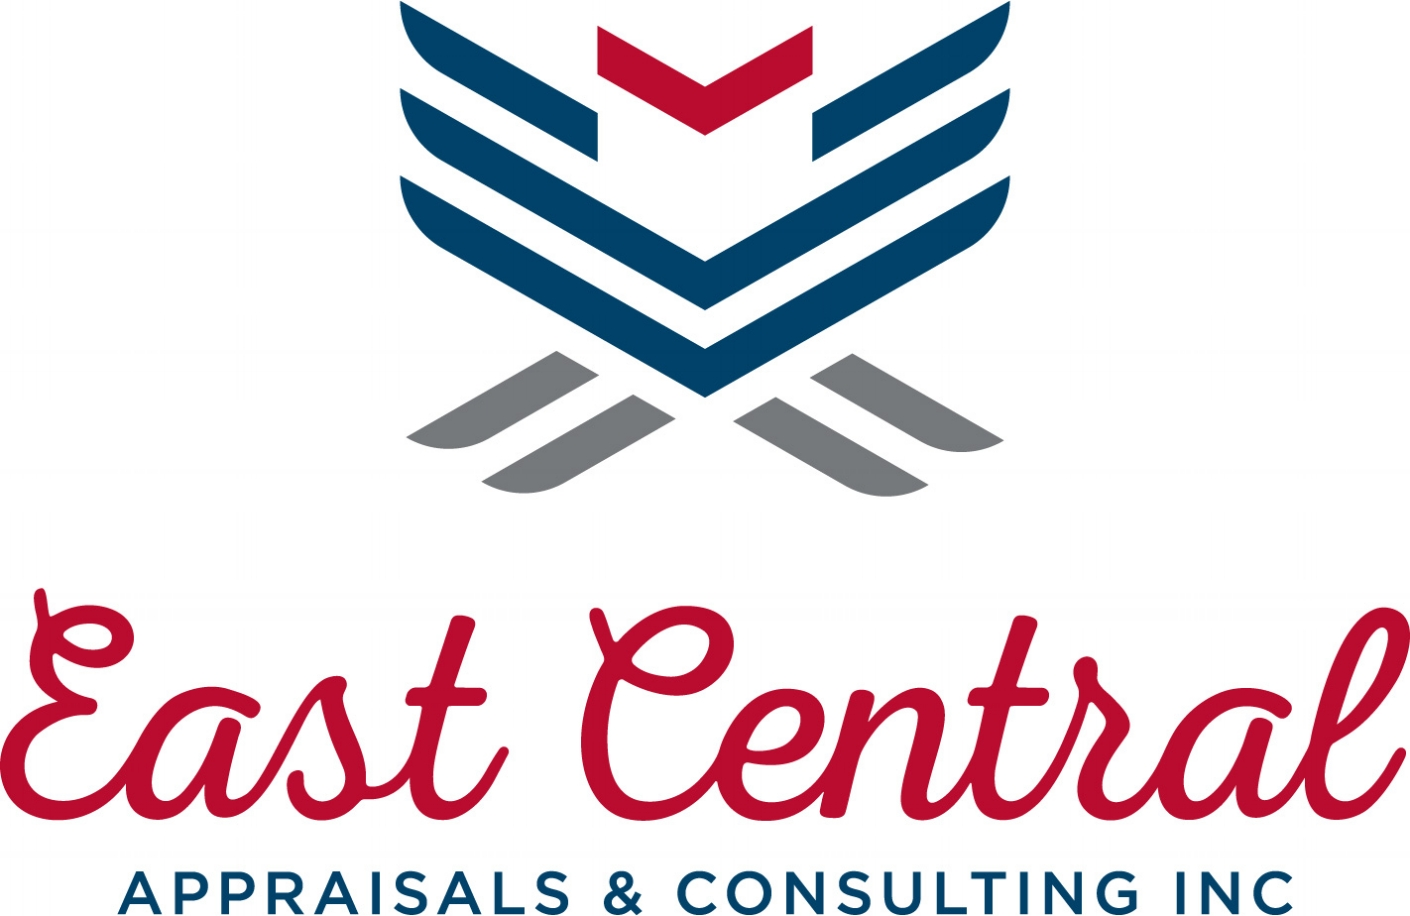 East Central Appraisals & Consulting Inc.